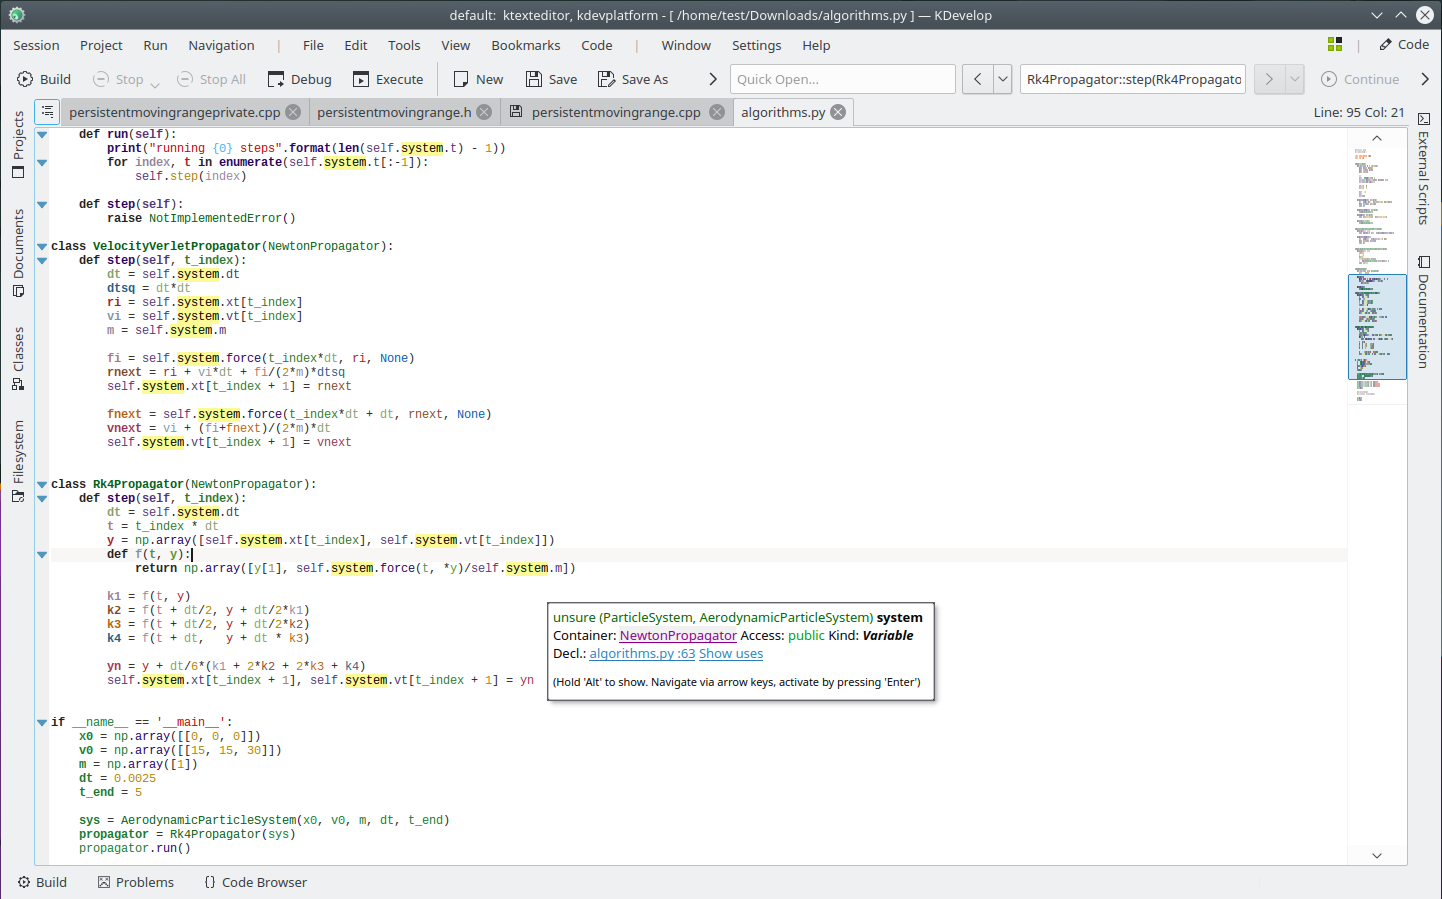 A cross-platform IDE for C, C++, Python, QML/JavaScript and